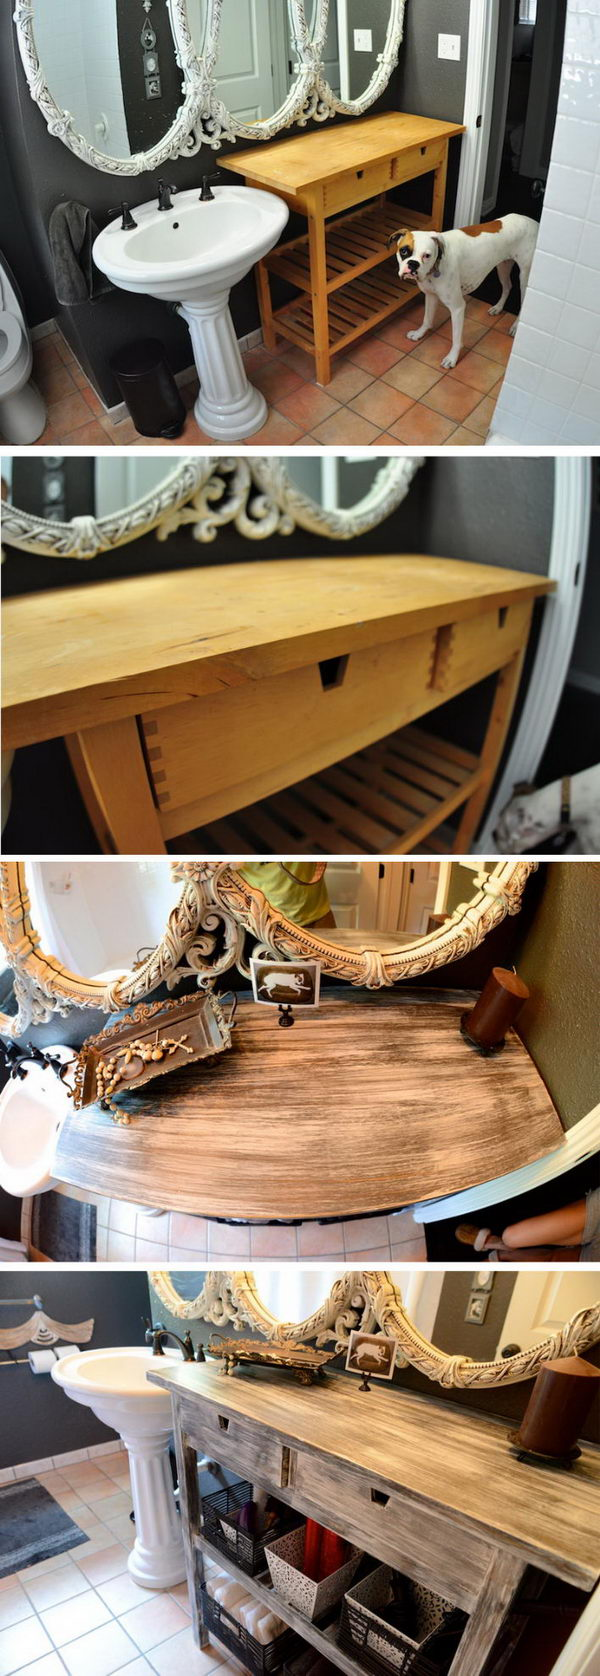 Recycle Old Ikea Furniture into Custom Shabby Chic Pieces.